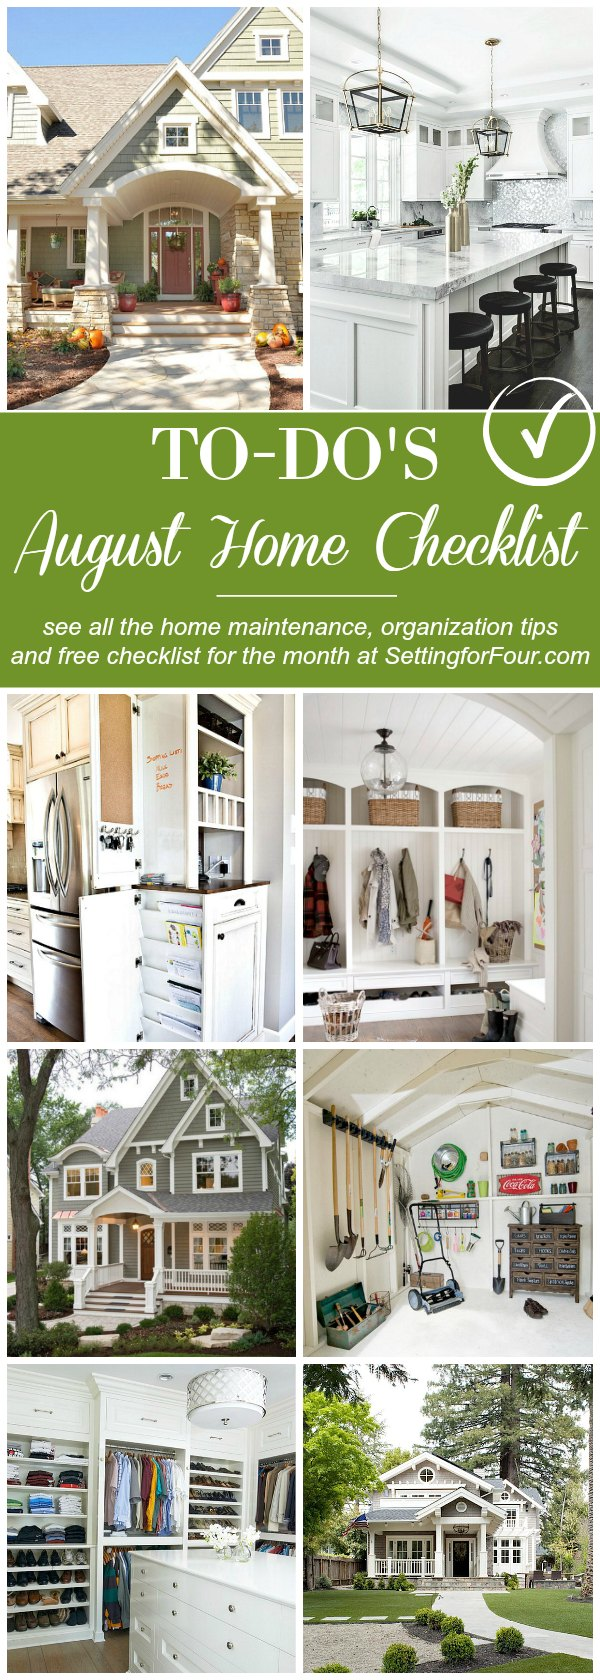 See this handy August Home Checklist and home improvement tips to plan for Fall. Includes a FREE To-Do checklist that you can print off. Helpful tips on how to enjoy the end of summer, prepare for back to school, home maintenance checks to do, fall organization & cleaning tips and more!